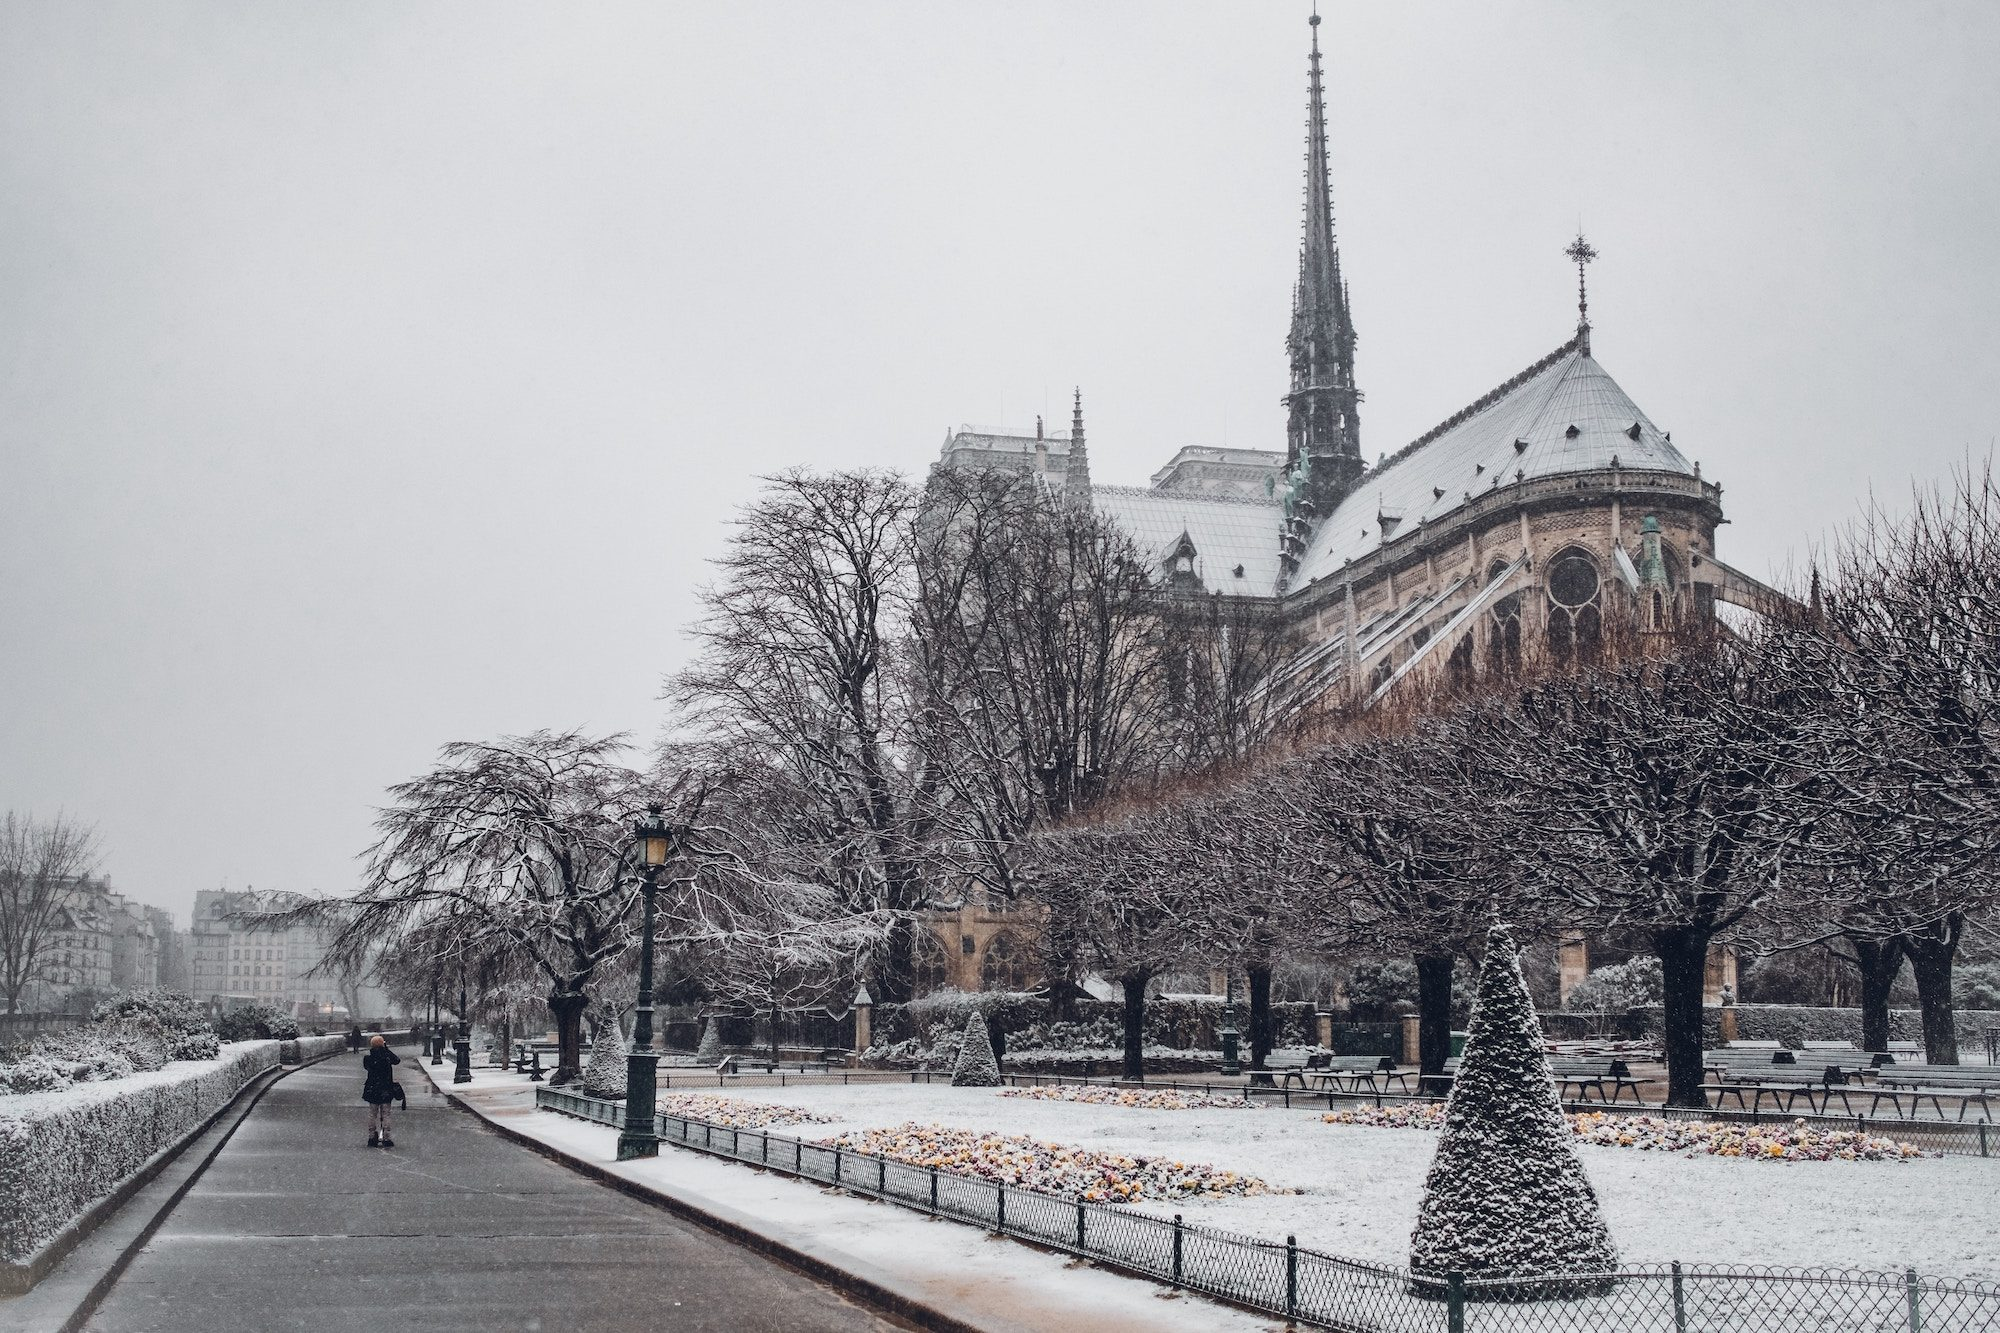 When it's cold and snowing outside in Paris, like in this picture of Notre Dame Cathedral, what could be better than staying inside and listening to one of our favorite podcasts?